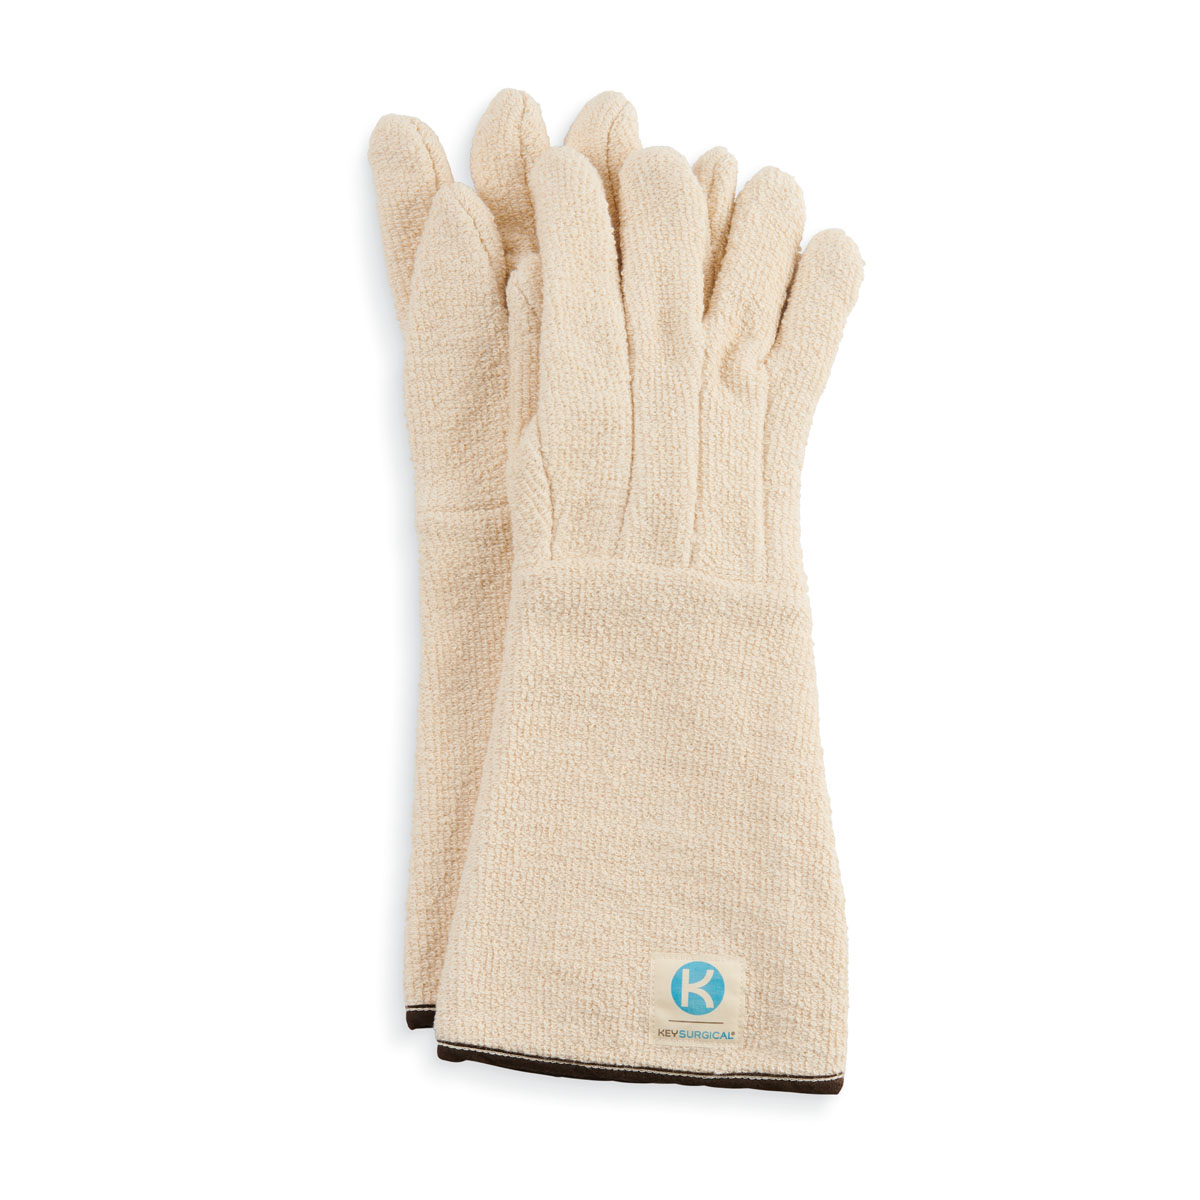 Steriliser Gloves Image